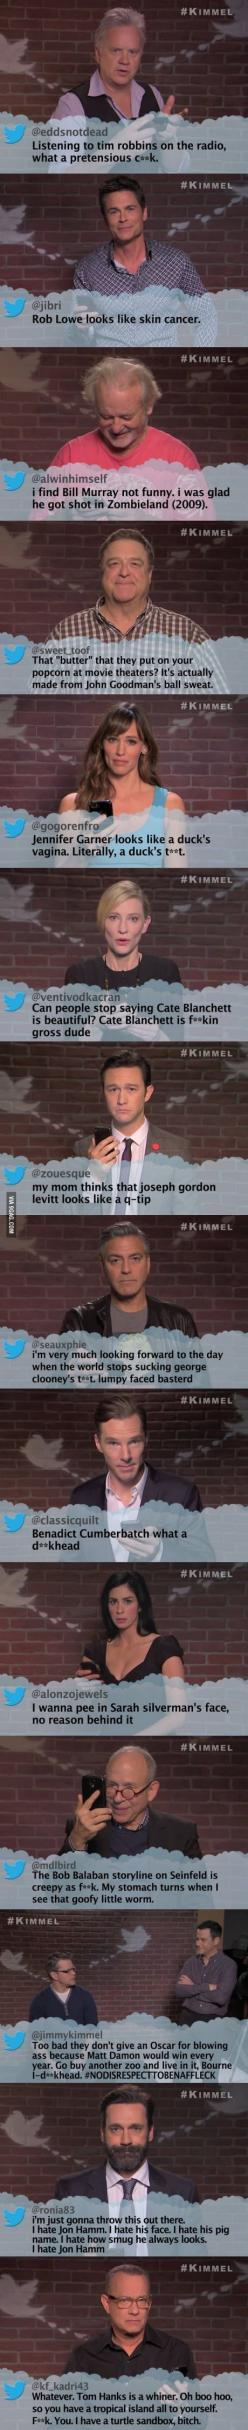 Celebrities read mean tweets: Best Funny, Laughs Humor, Funny Stuff, Funnies, Things, Celebrities Funny, Smile, Celebrity Humor, Giggles